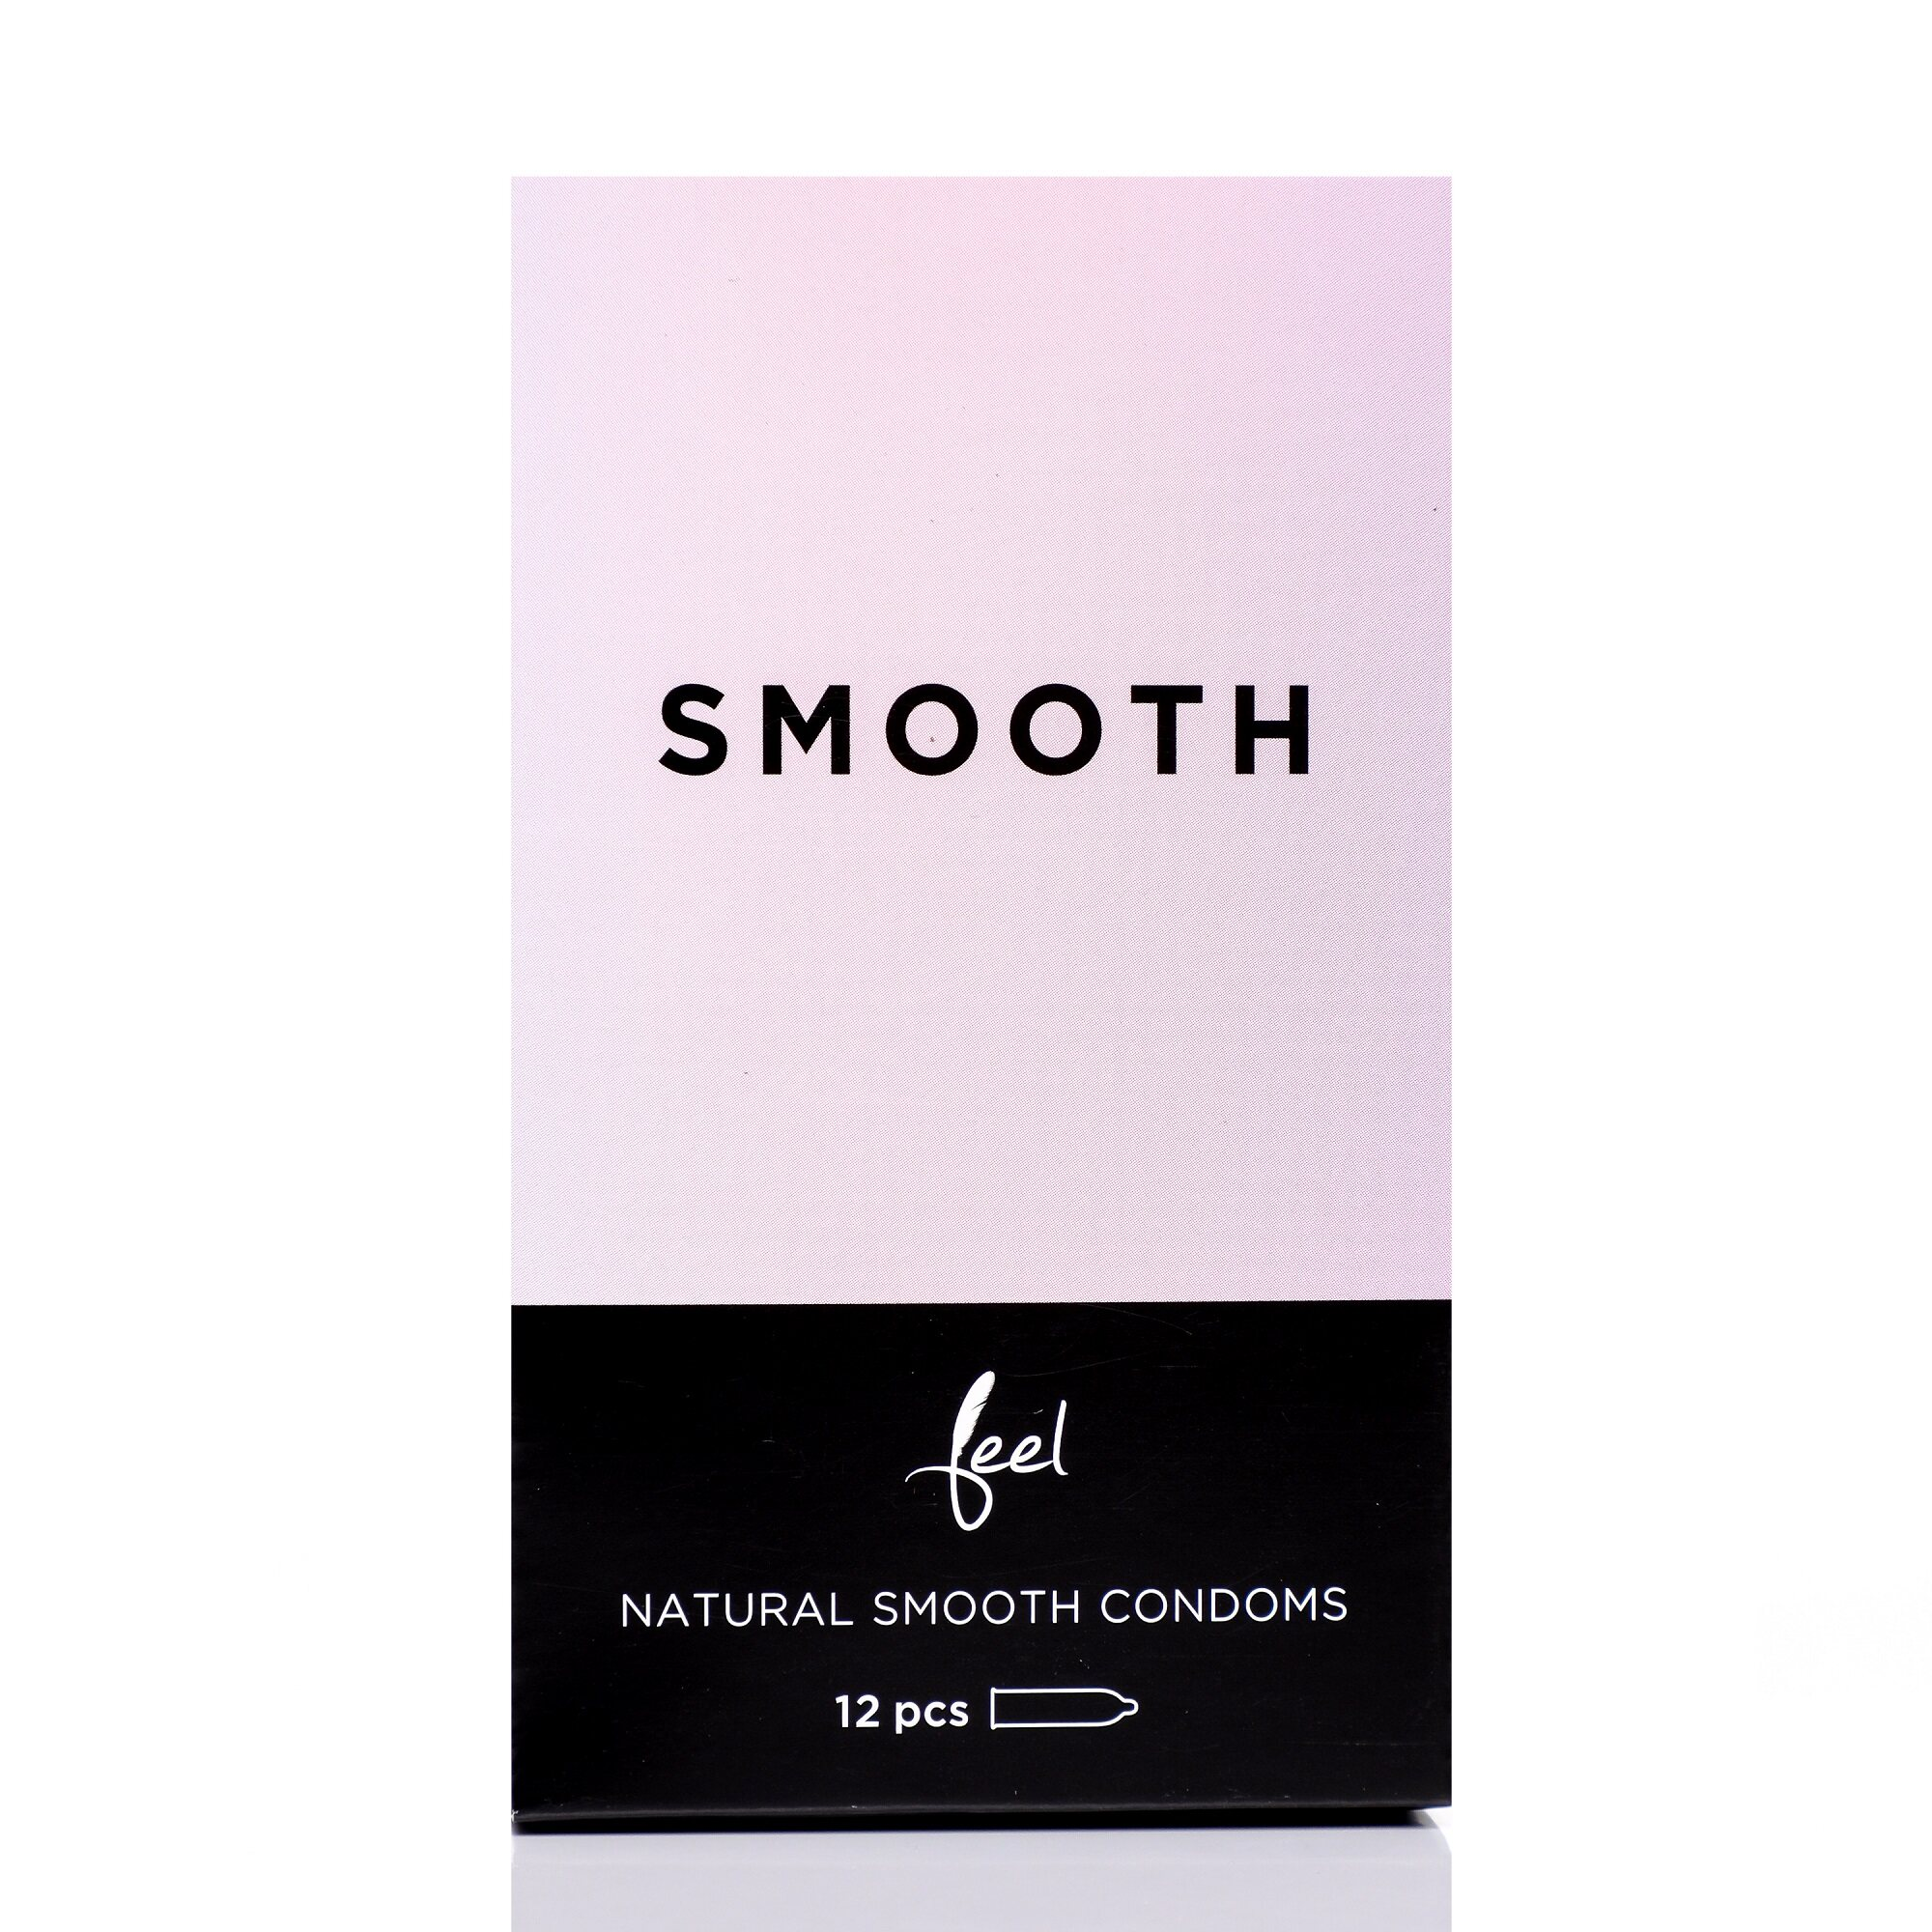 Nulatex Feel Smooth Natural & Seamless Condoms 12pcs